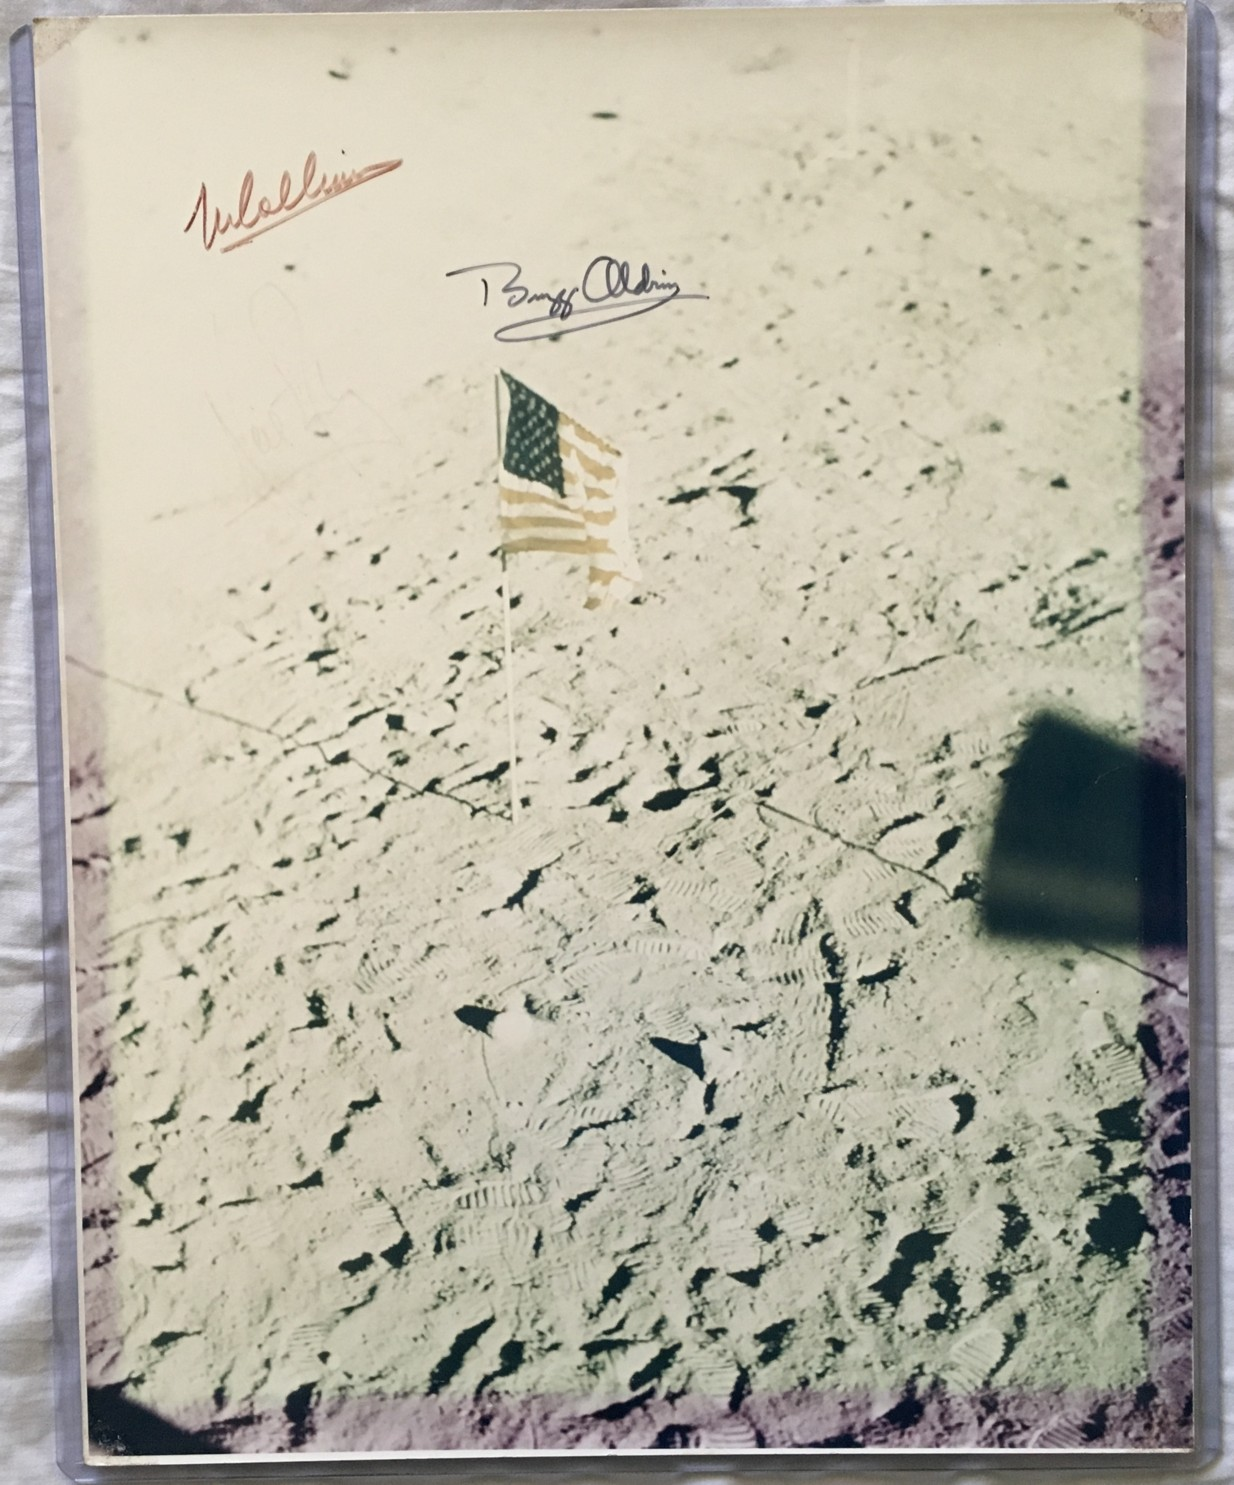 Apollo 11 autographed 11x14 photo (faded)